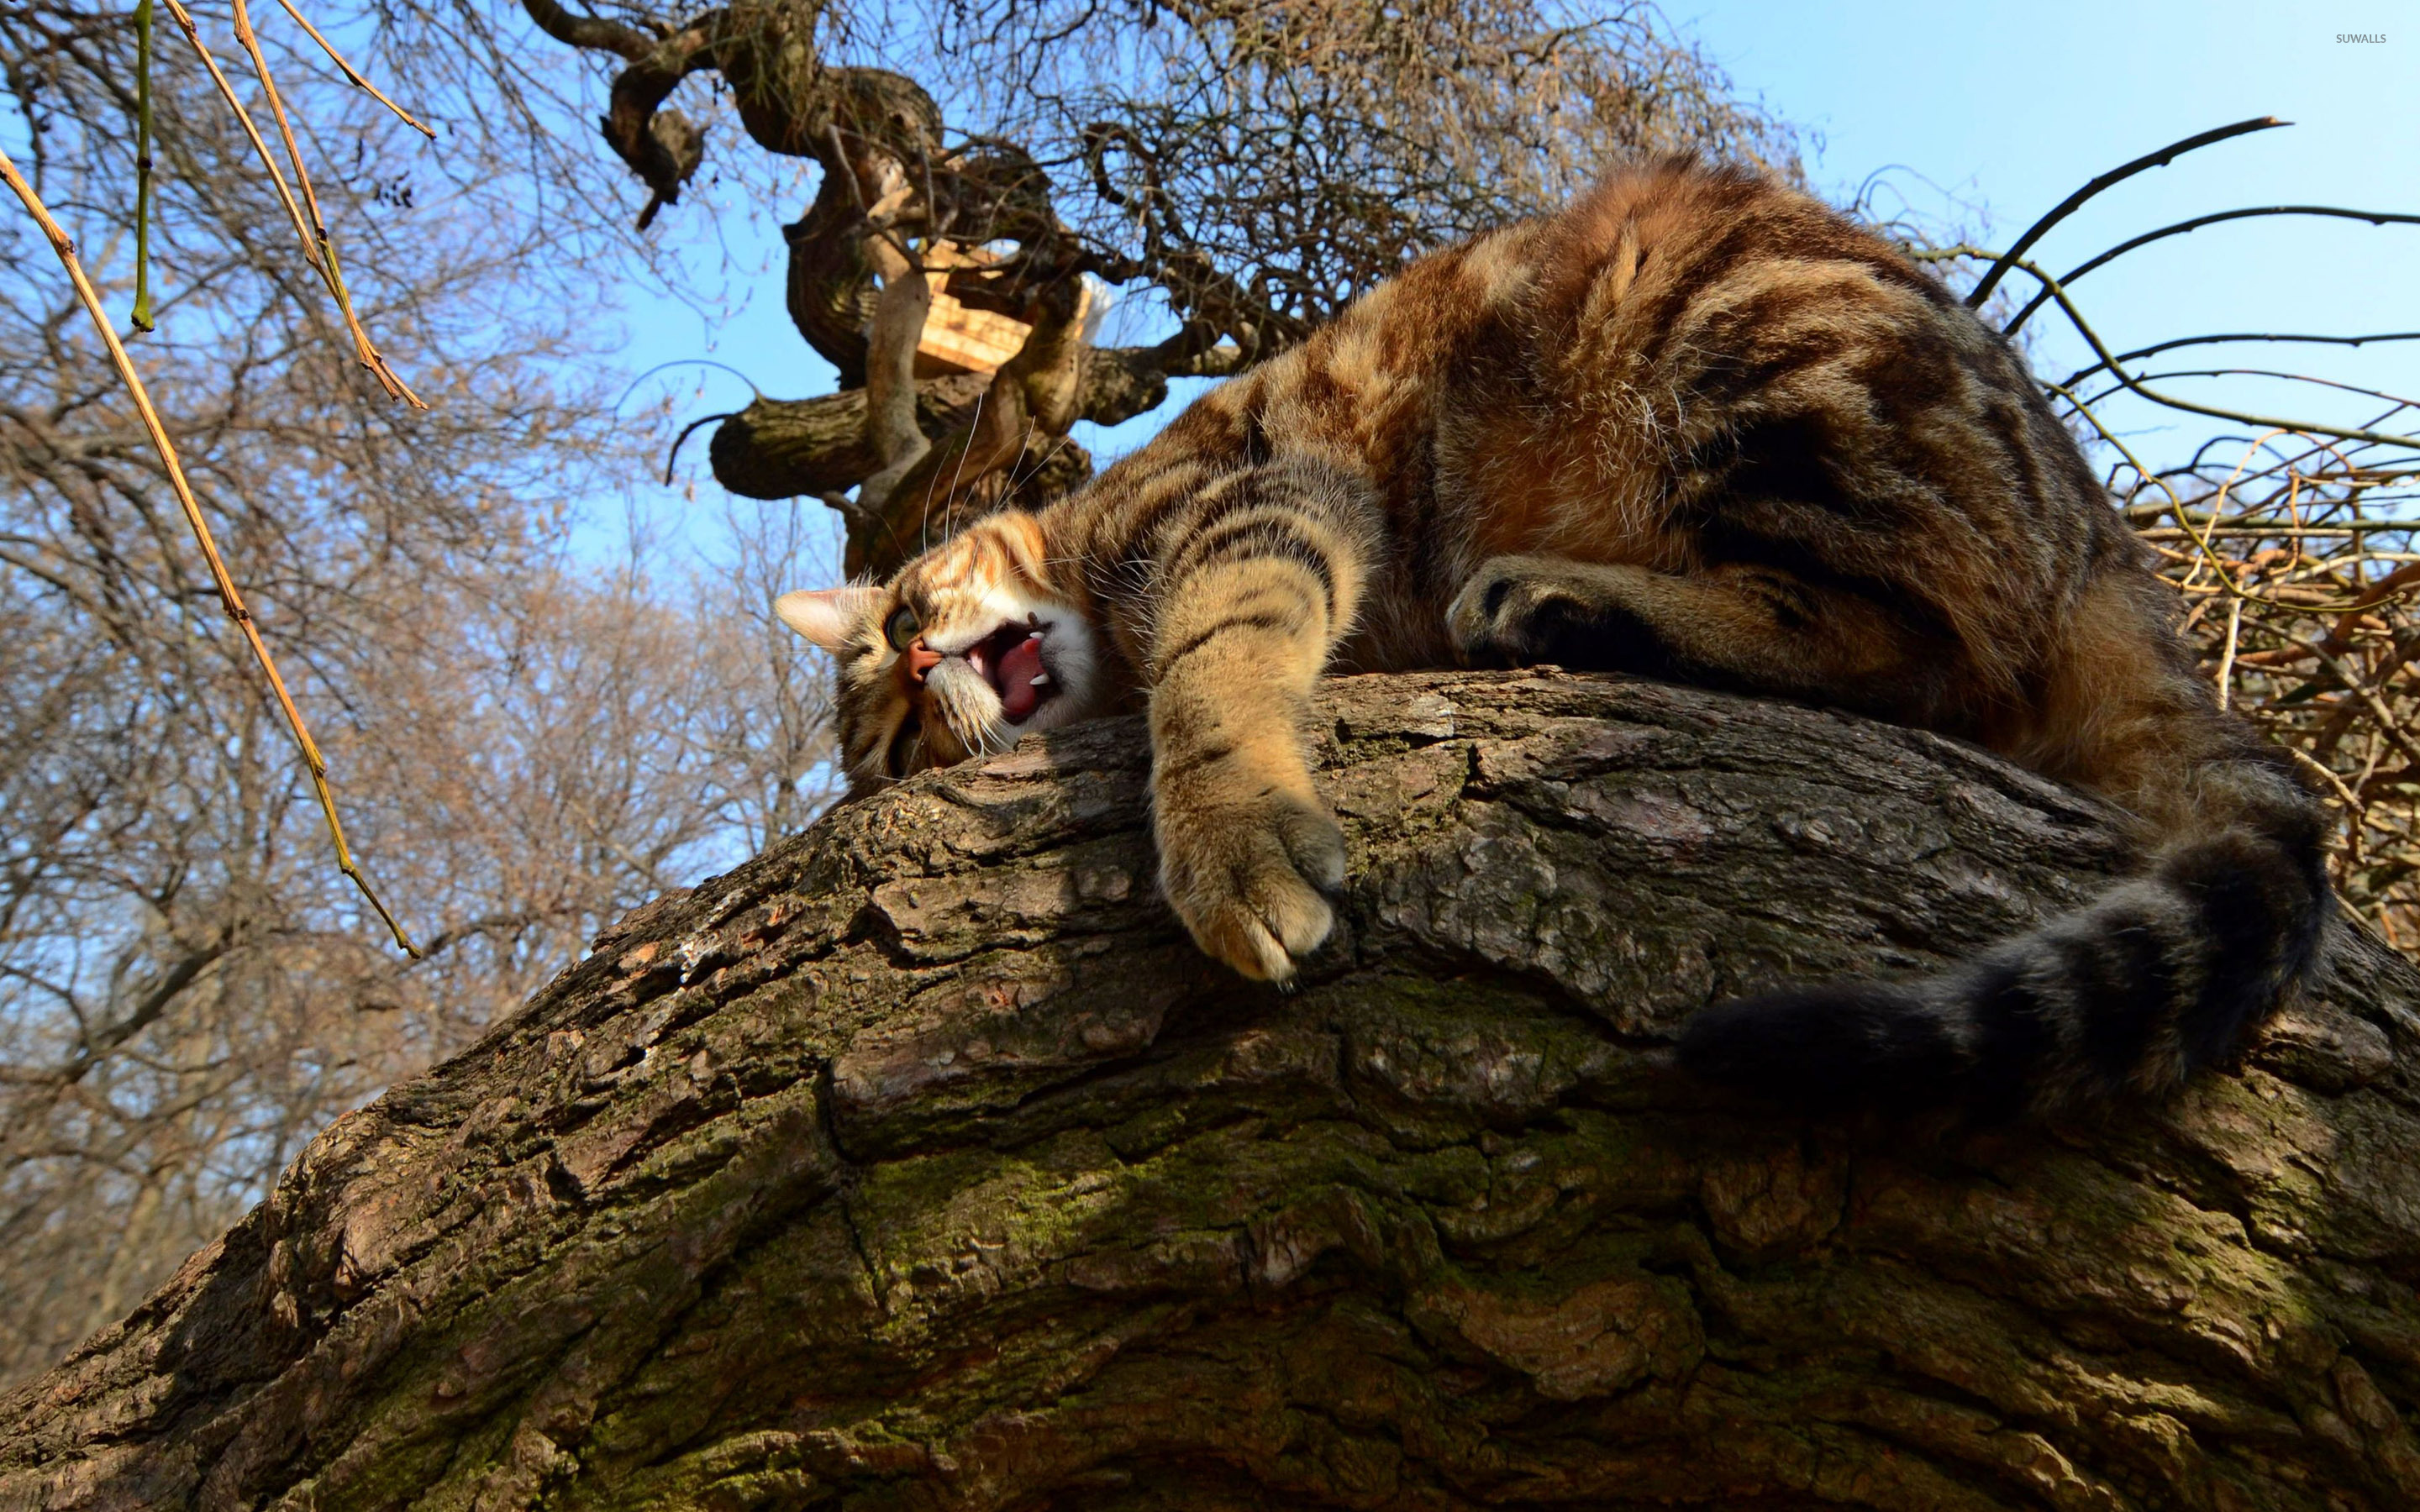 Cat in a tree wallpaper - Animal wallpapers - #39009